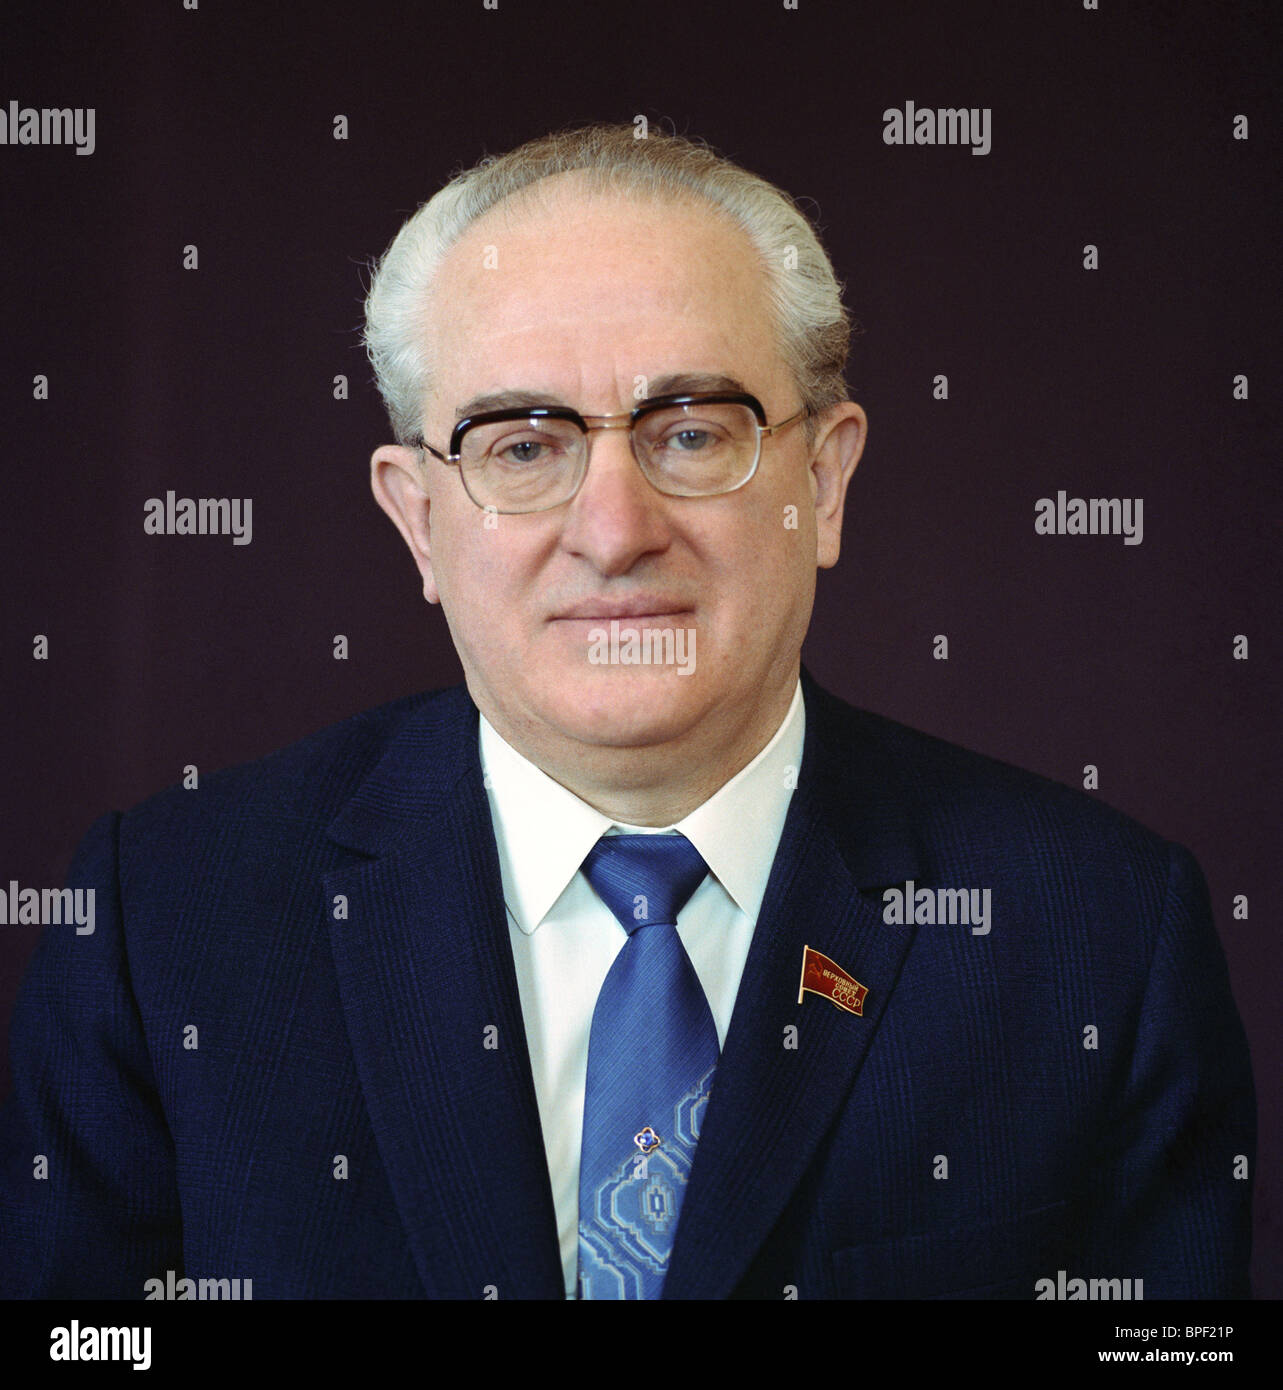 General Secretary of the CPSU Yuri Andropov, 1983 - Stock Image